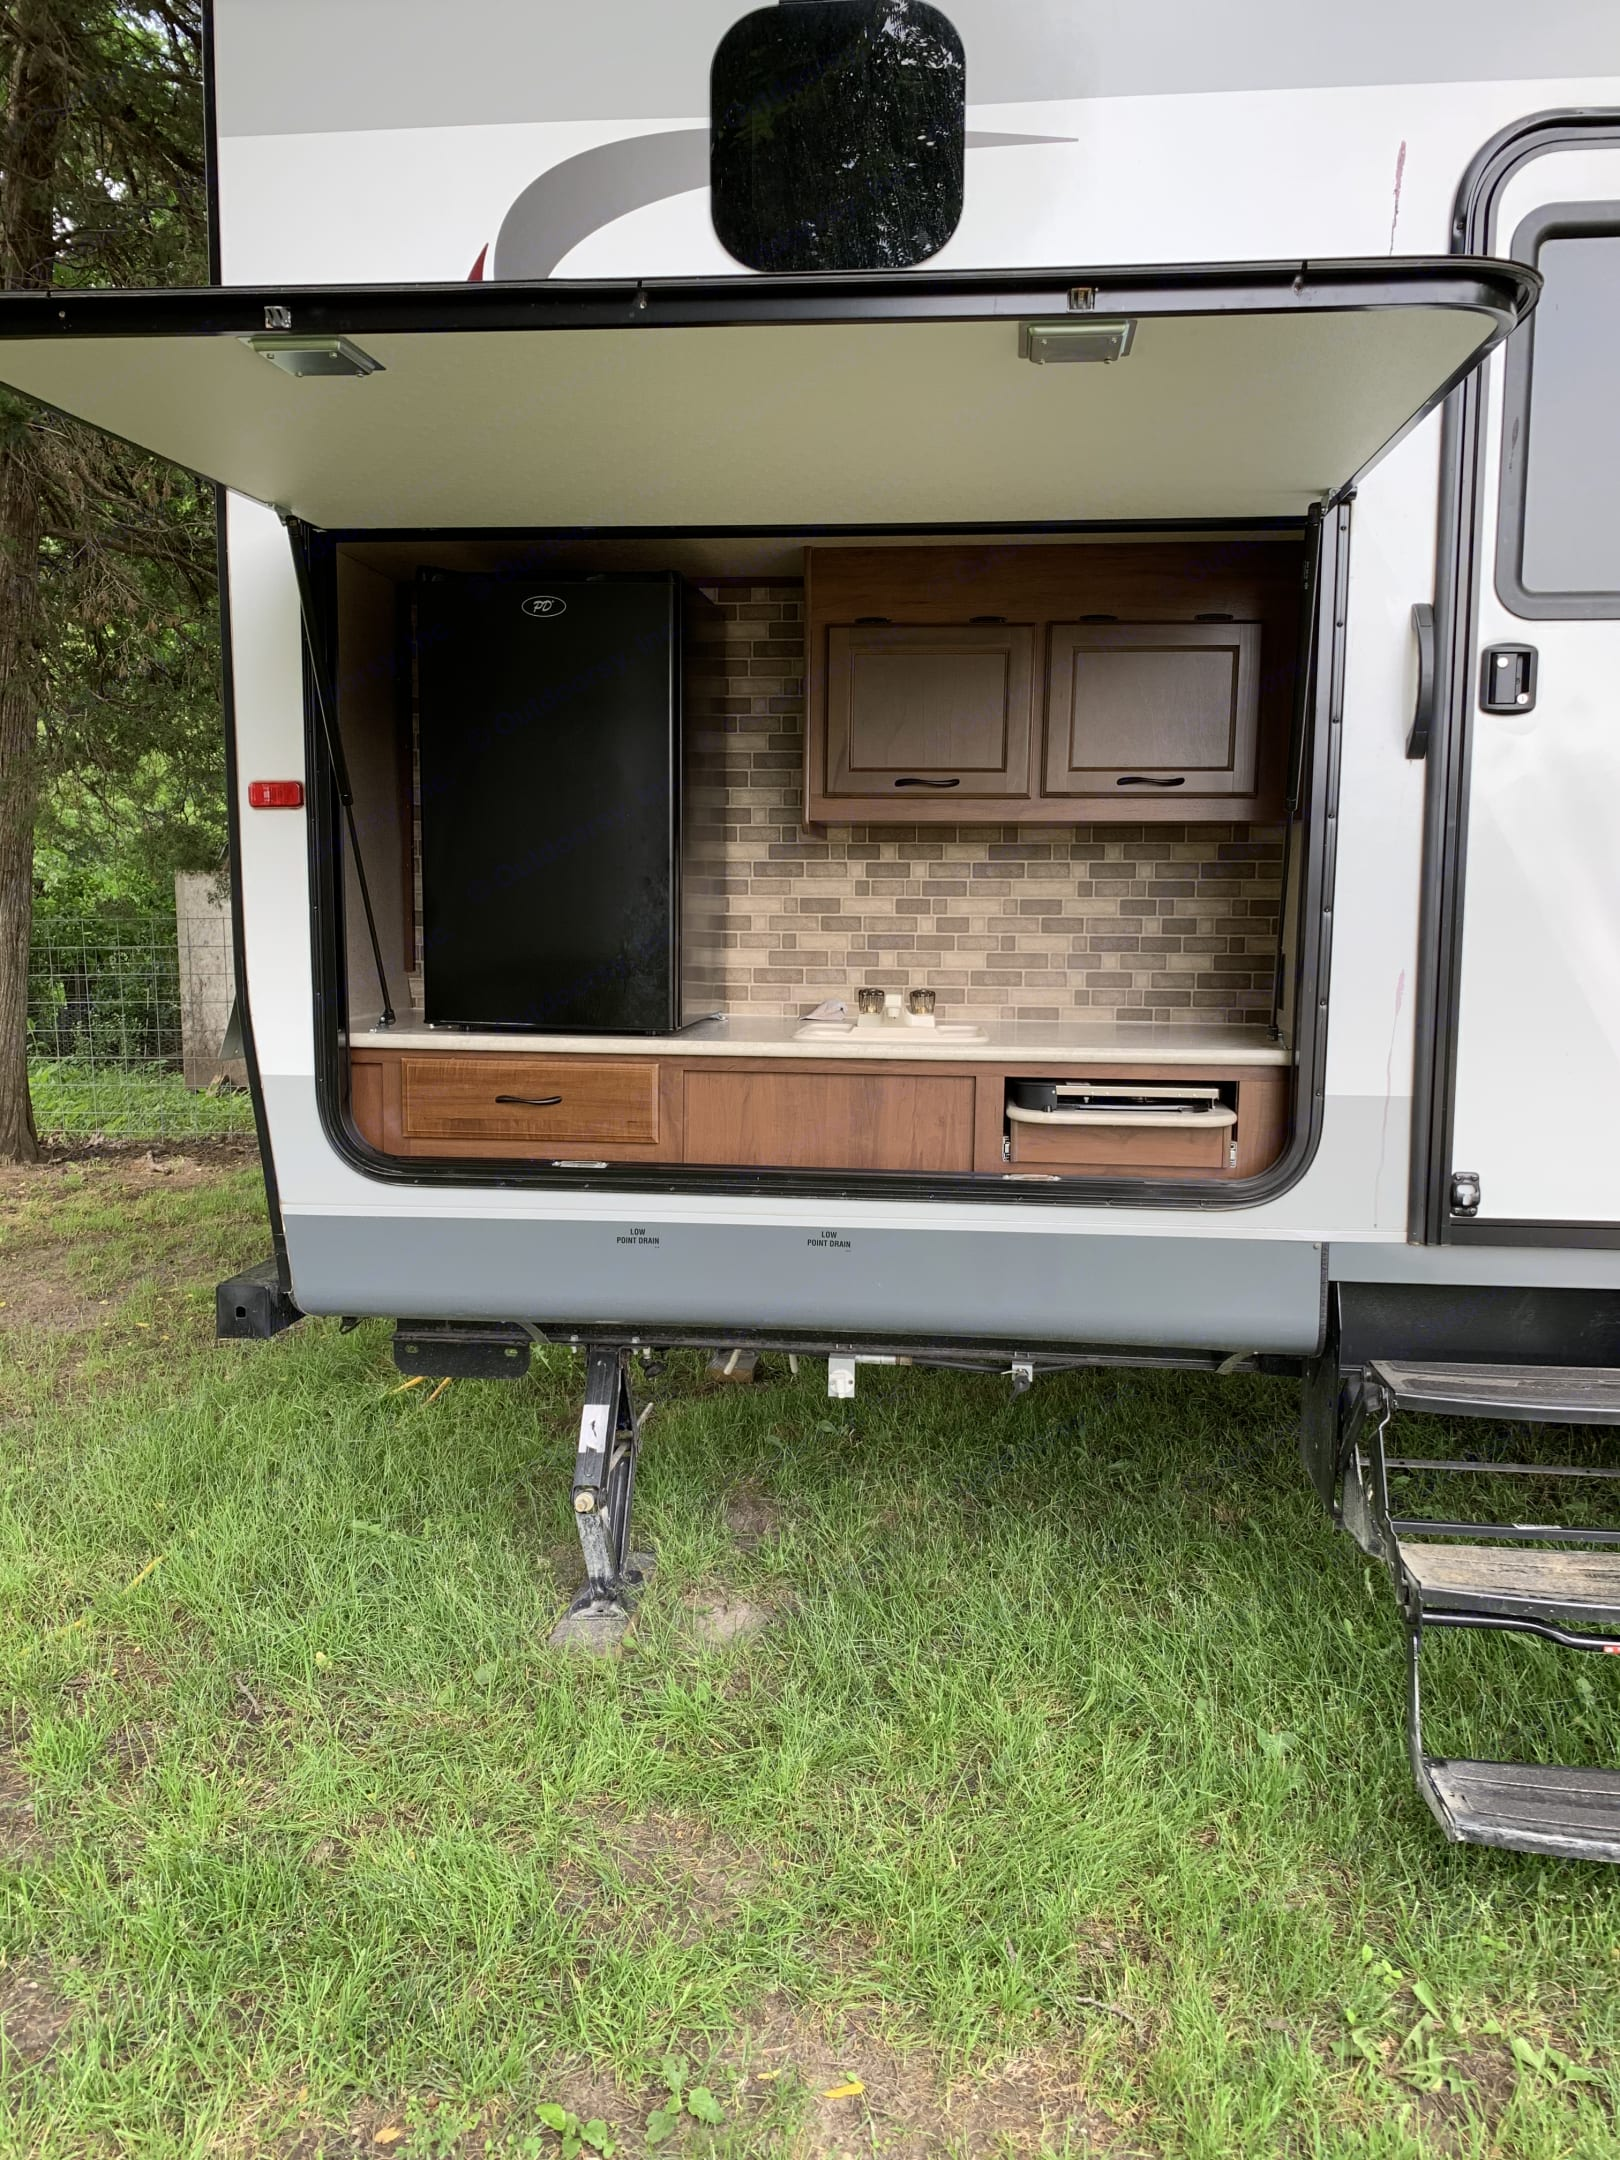 Outdoor kitchen, including fridge and propane grill space.. Jayco JayFlight 2015